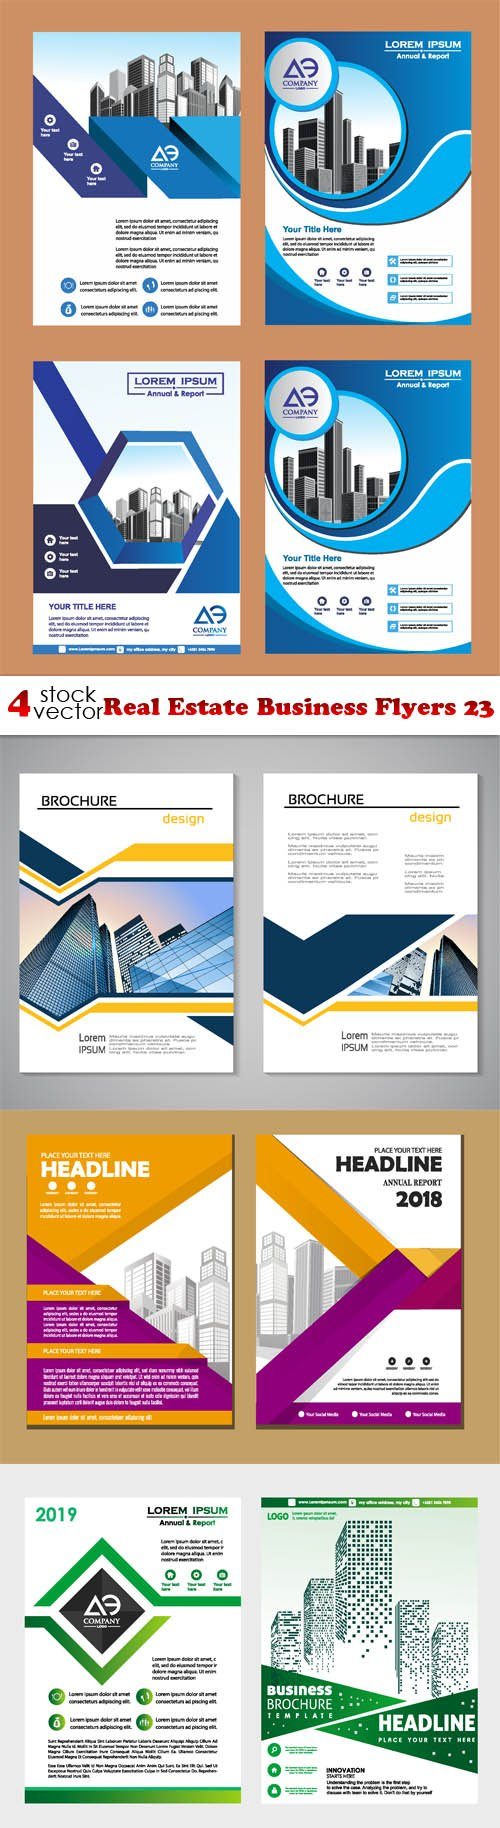 Vectors - Real Estate Business Flyers 23